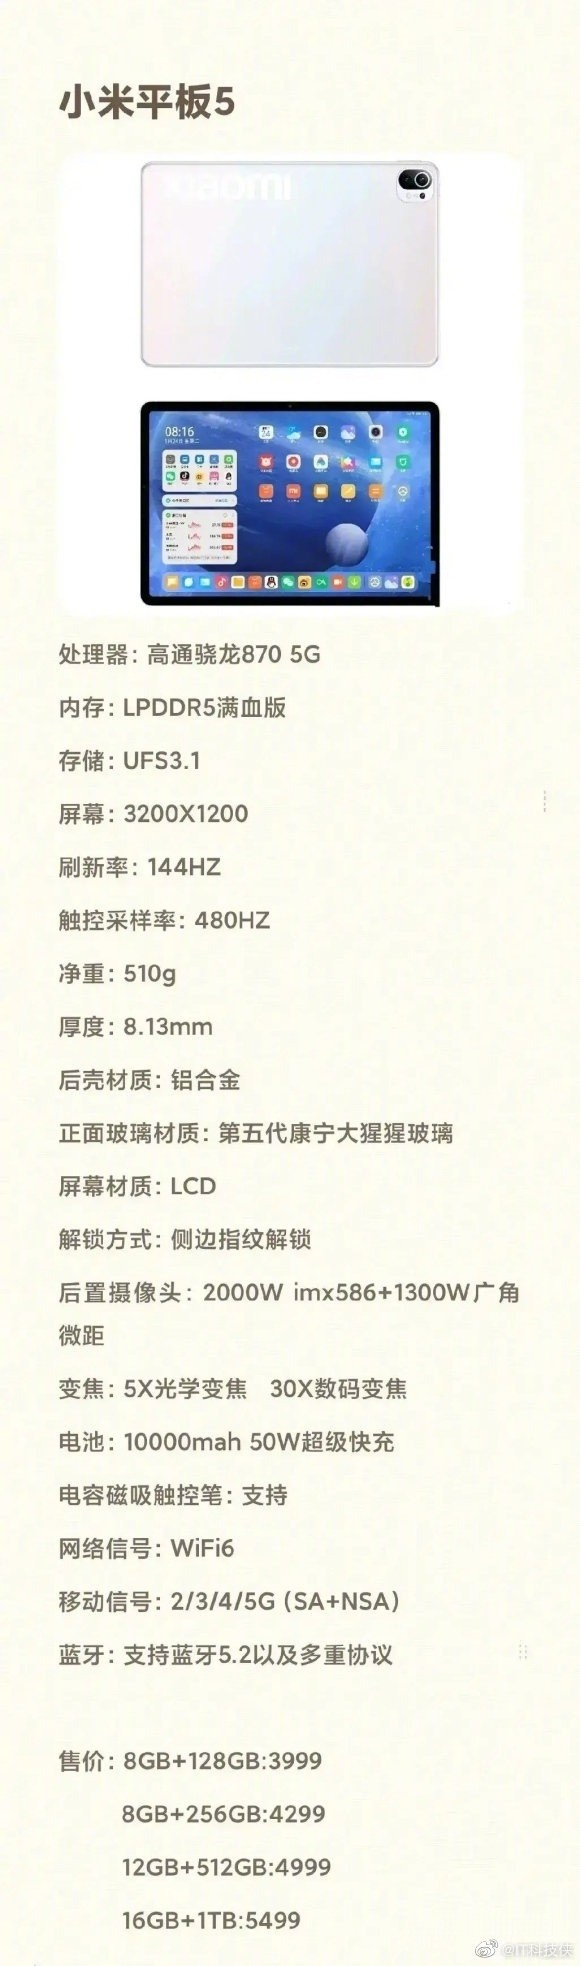 Alleged specifications of the Xiaomi Mi Pad 5